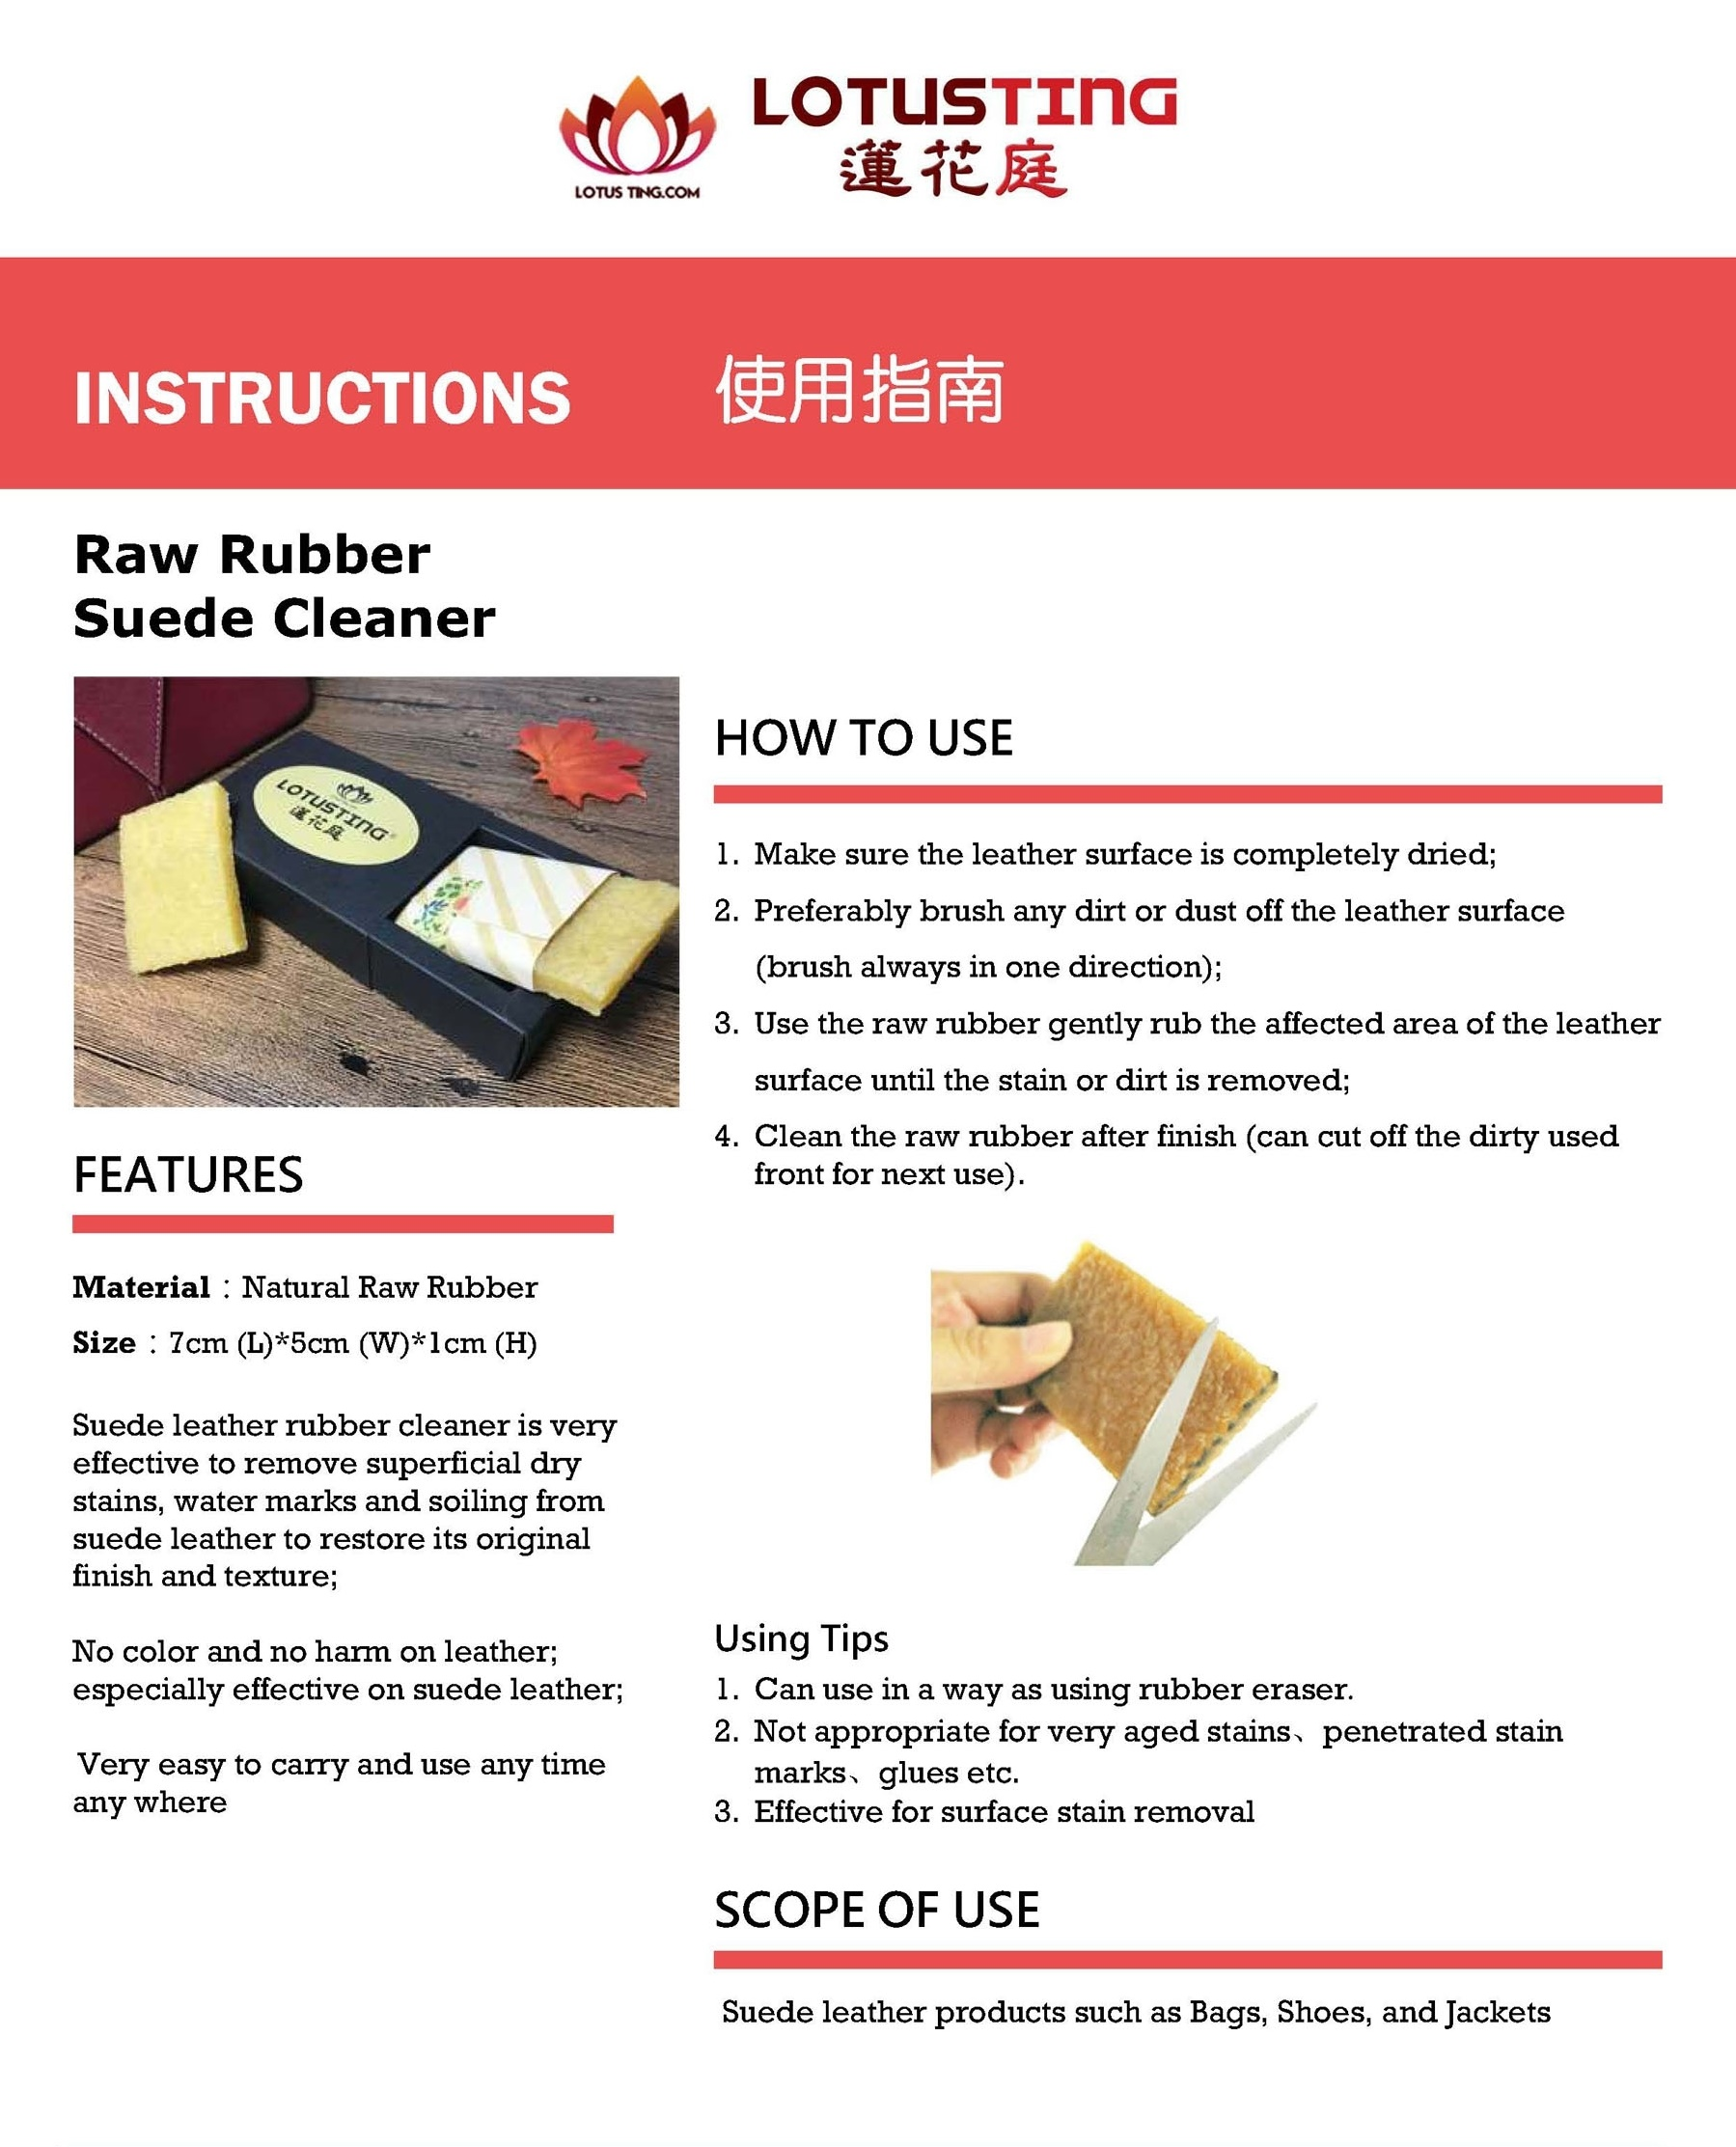 Raw Rubber Instruction in English